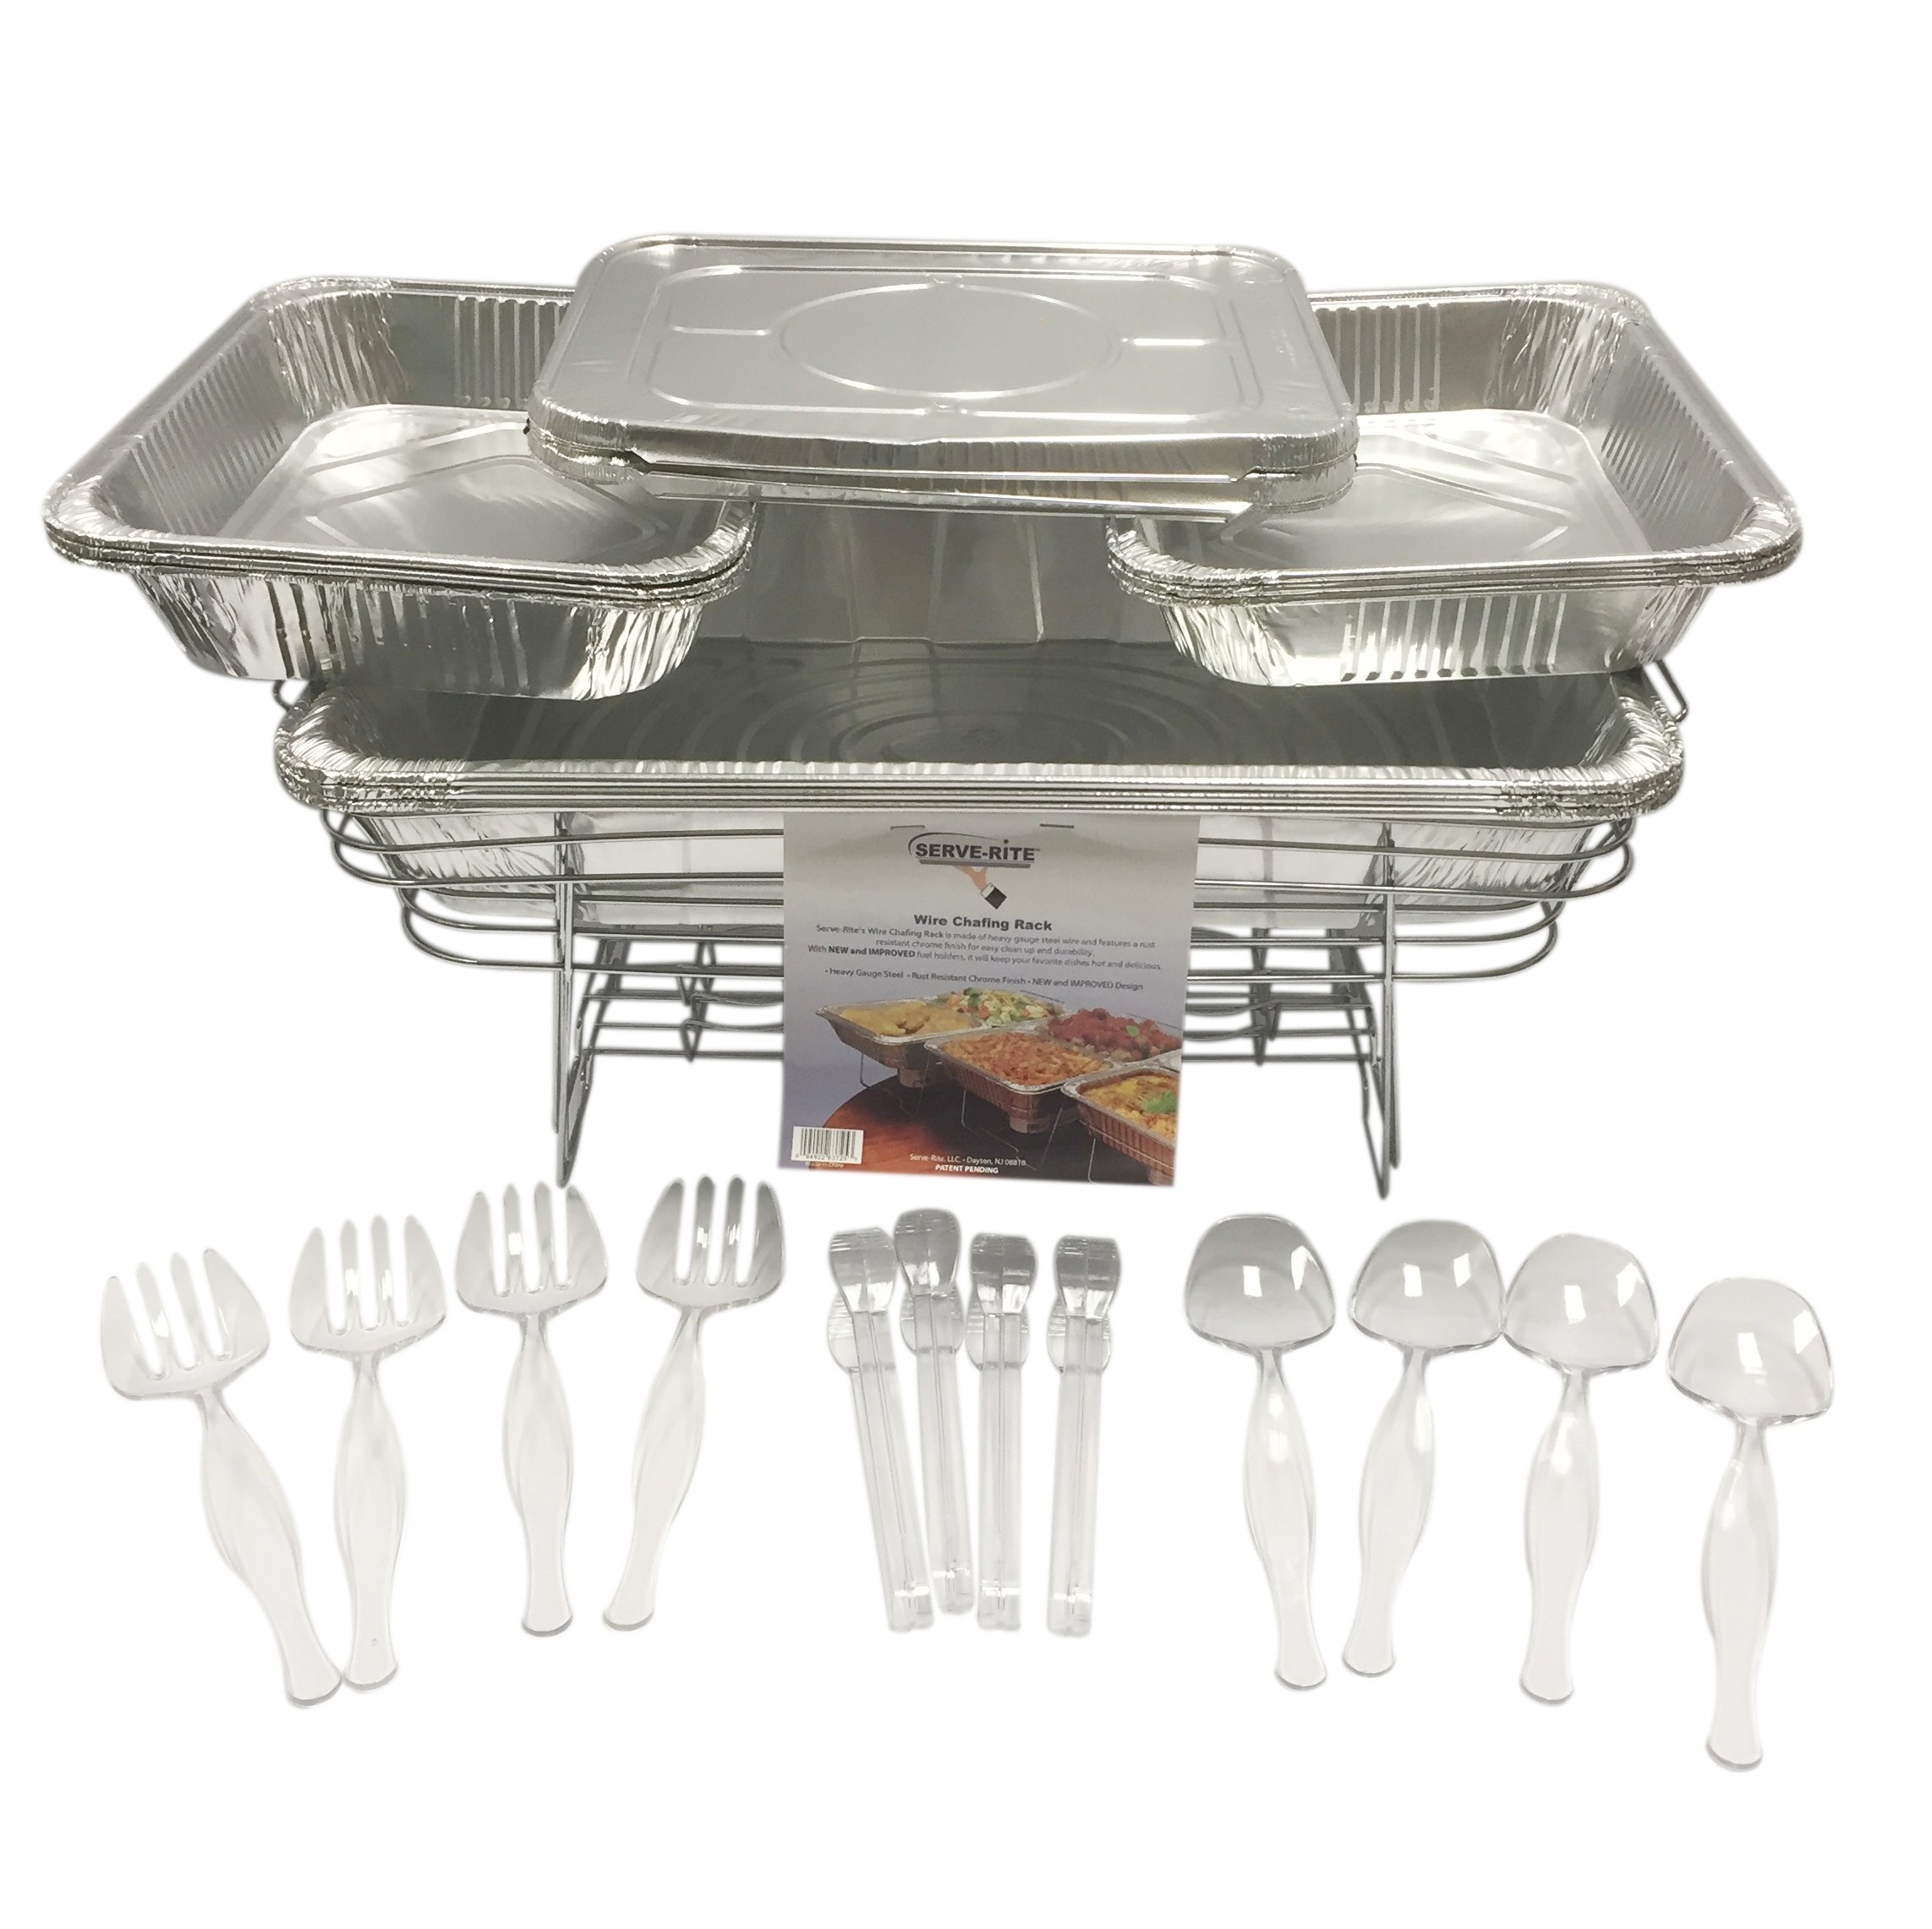 30 Piece Chafing Buffet Set, Includes 6 Half Pans, Covers and Serving Utensils by Serve-Rite